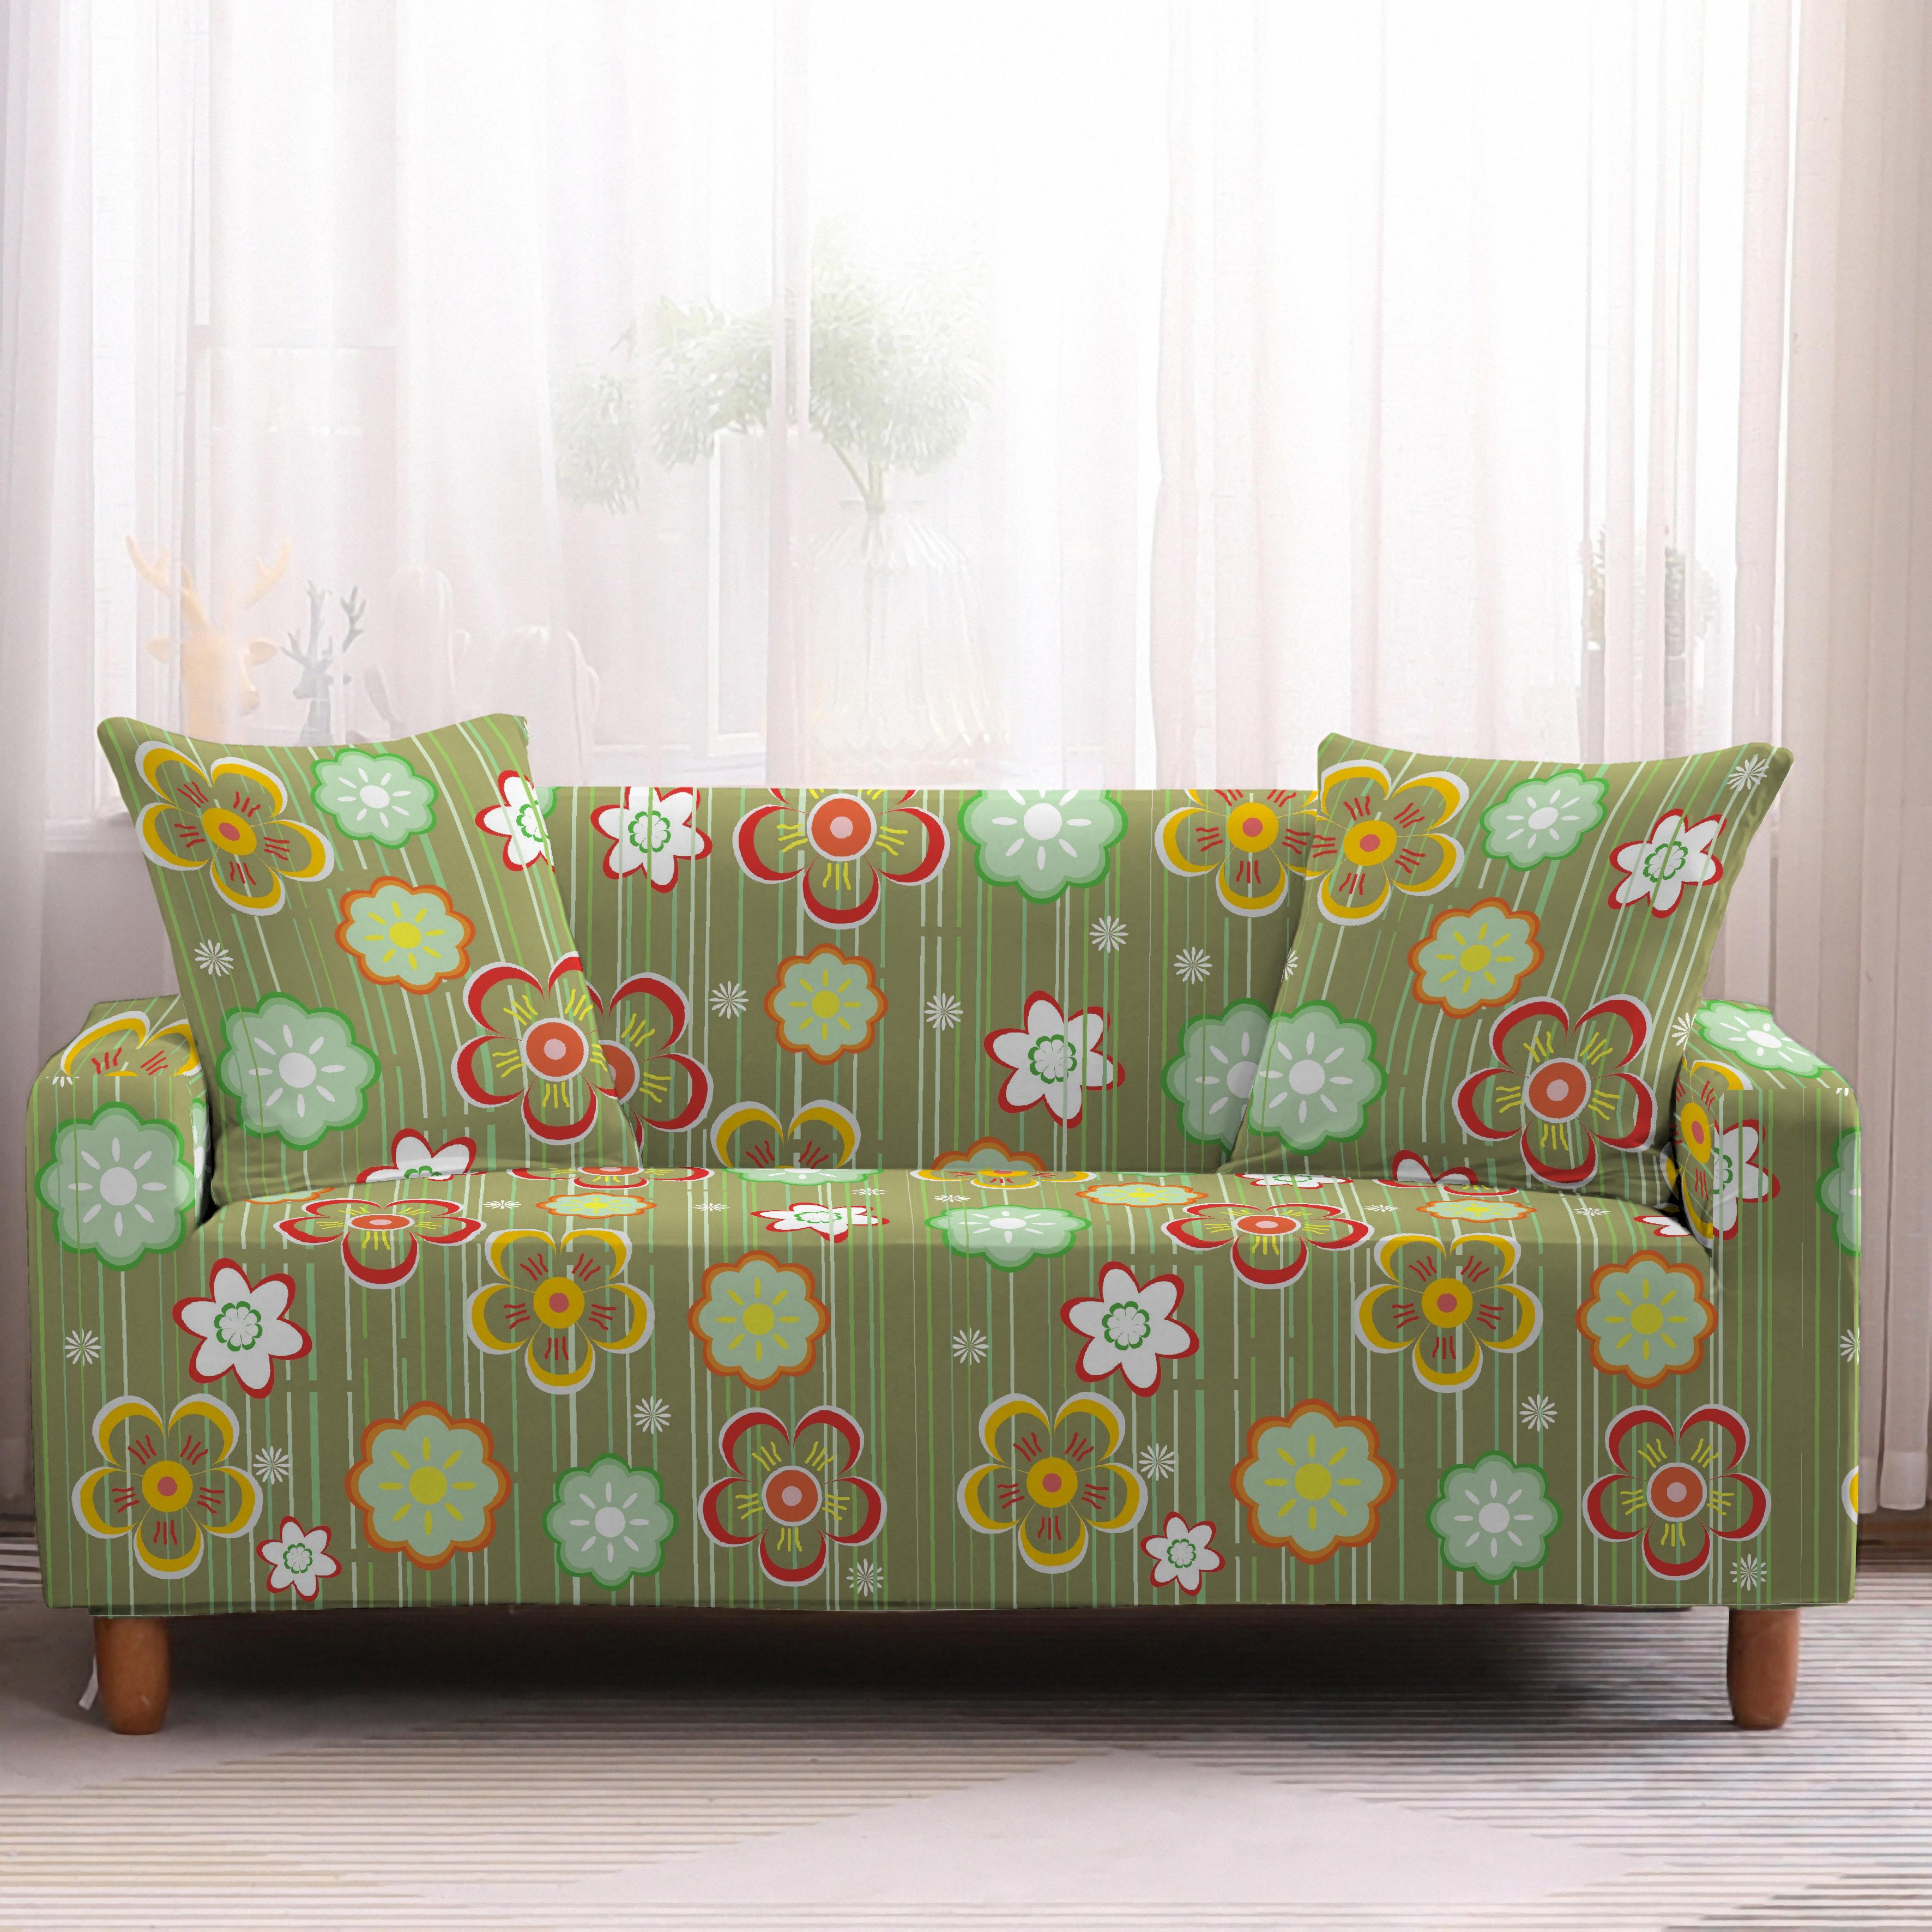 Bohemia Slipcovers Sofa Cover in Mandala Pattern to Protect Living Room Furniture from Stains and Dust 13